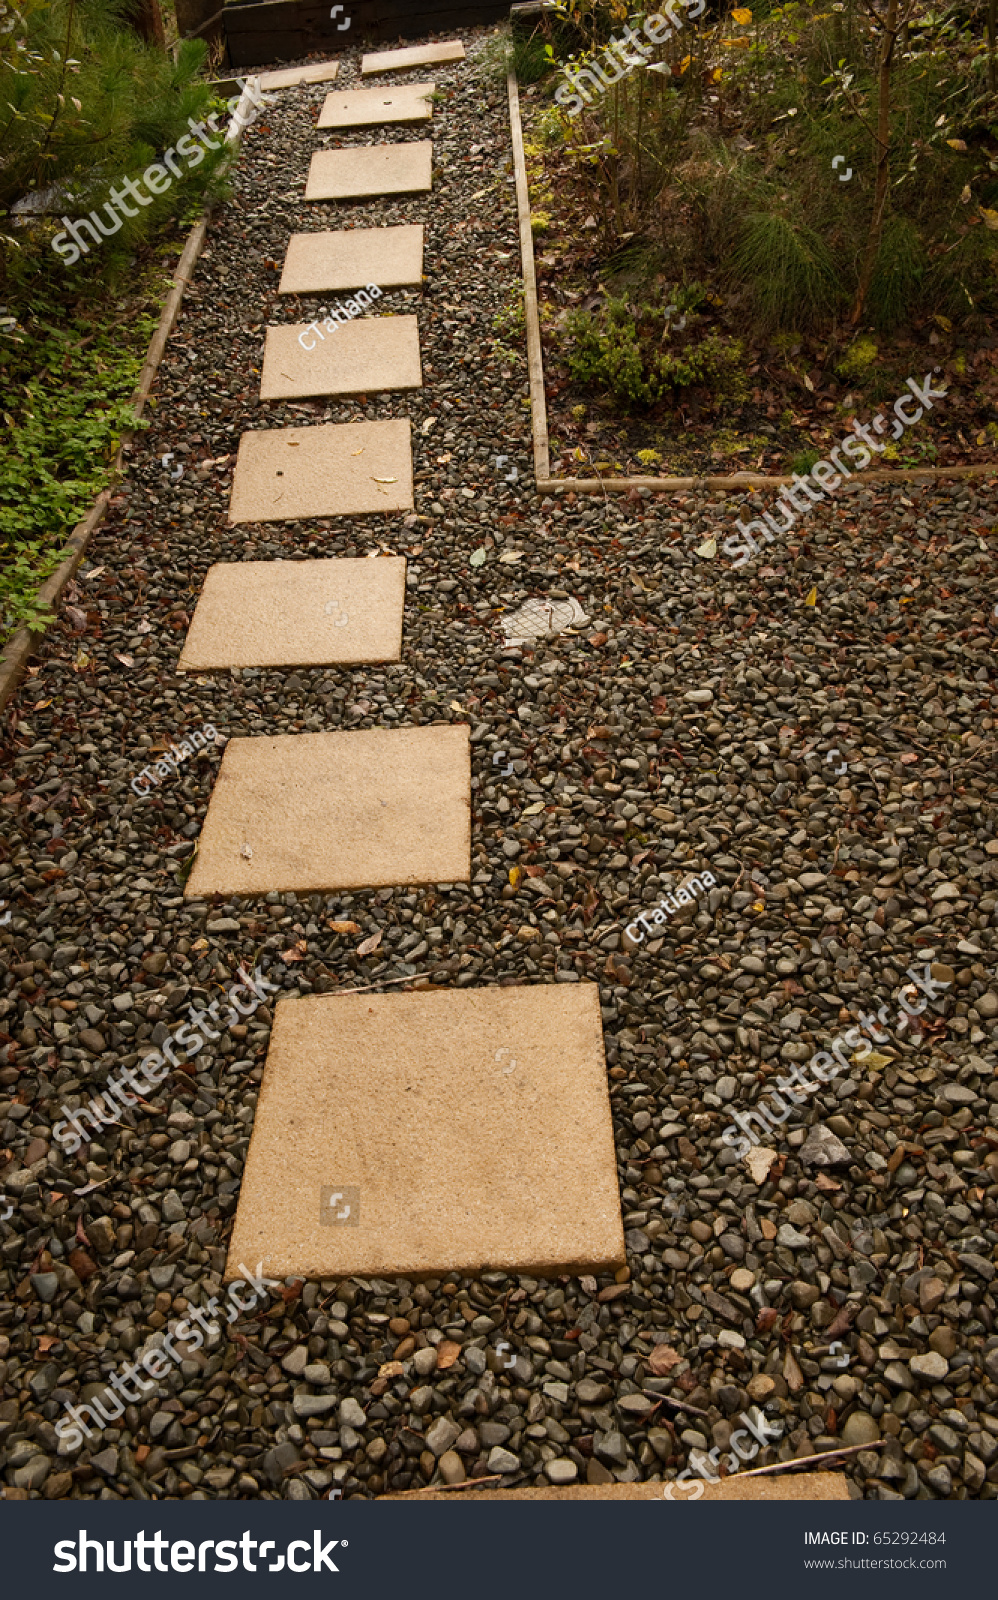 Stepping Stones Path Garden Stock Photo (Royalty Free) 65292484 ...